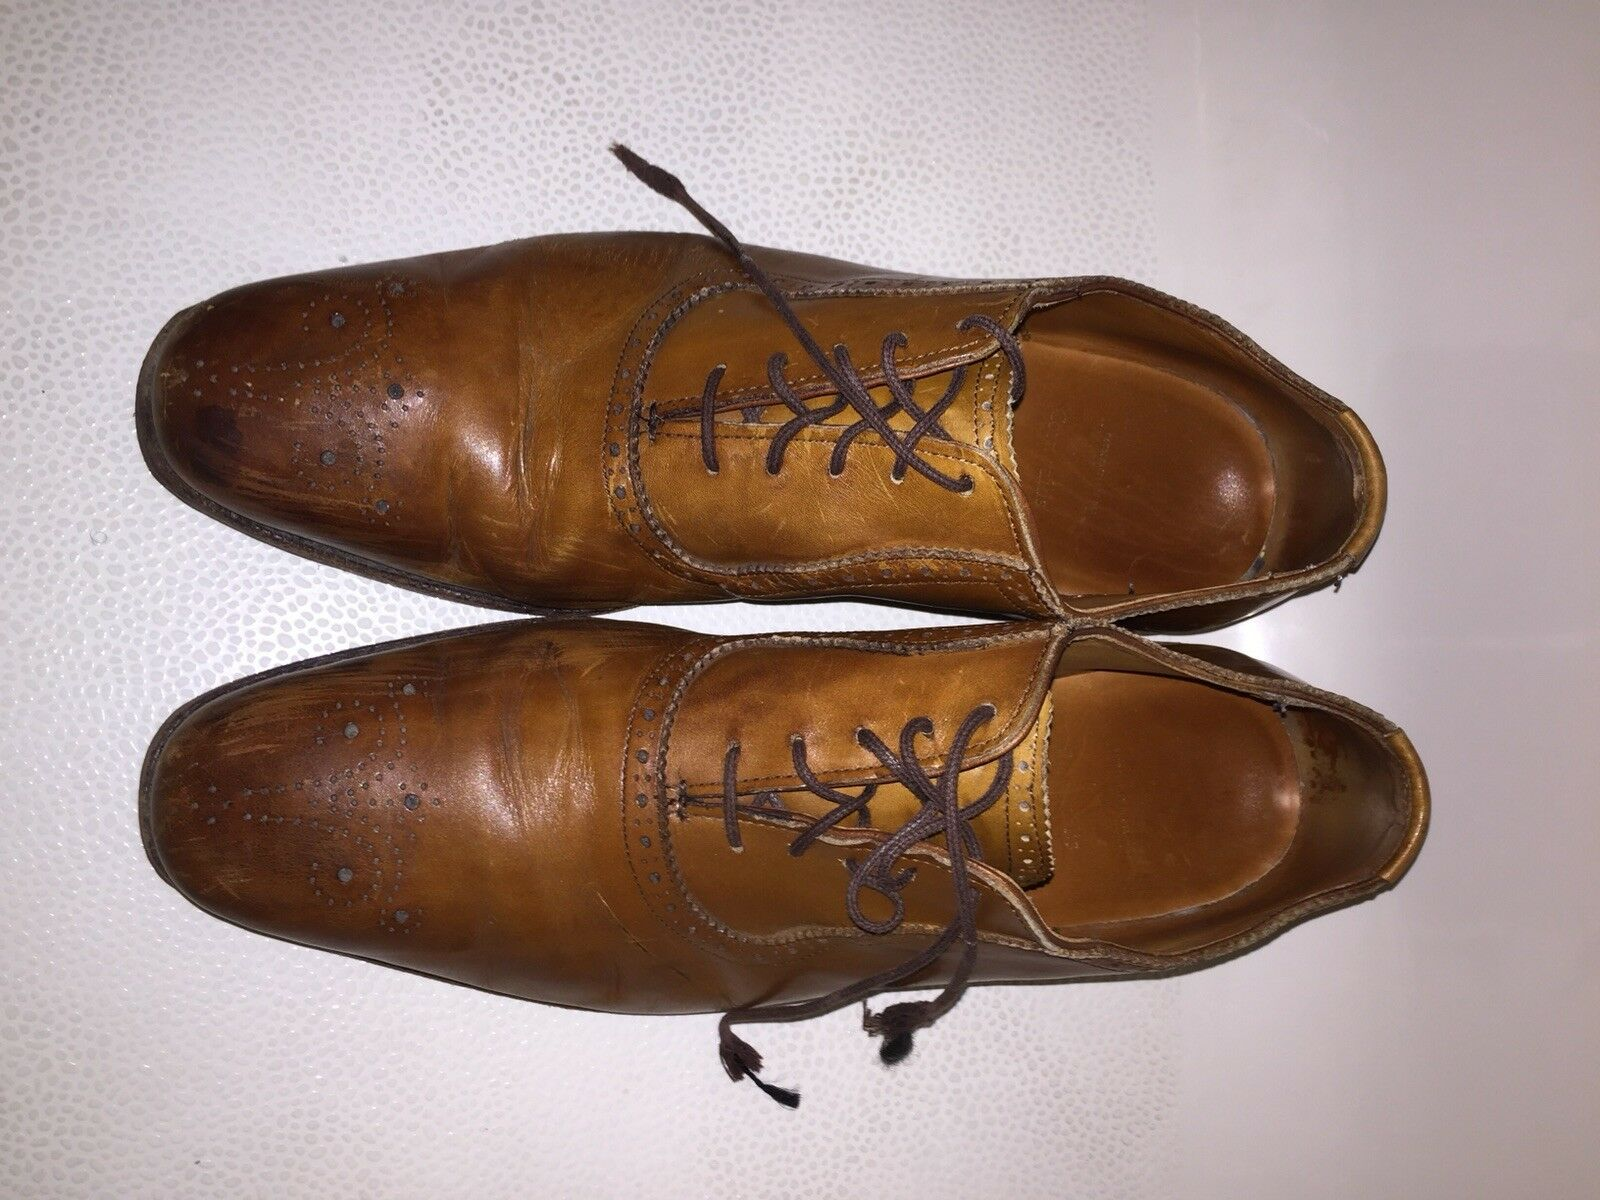 Allen Edmonds Cornwallis Walnut Leather Oxford Dress shoes 11 D